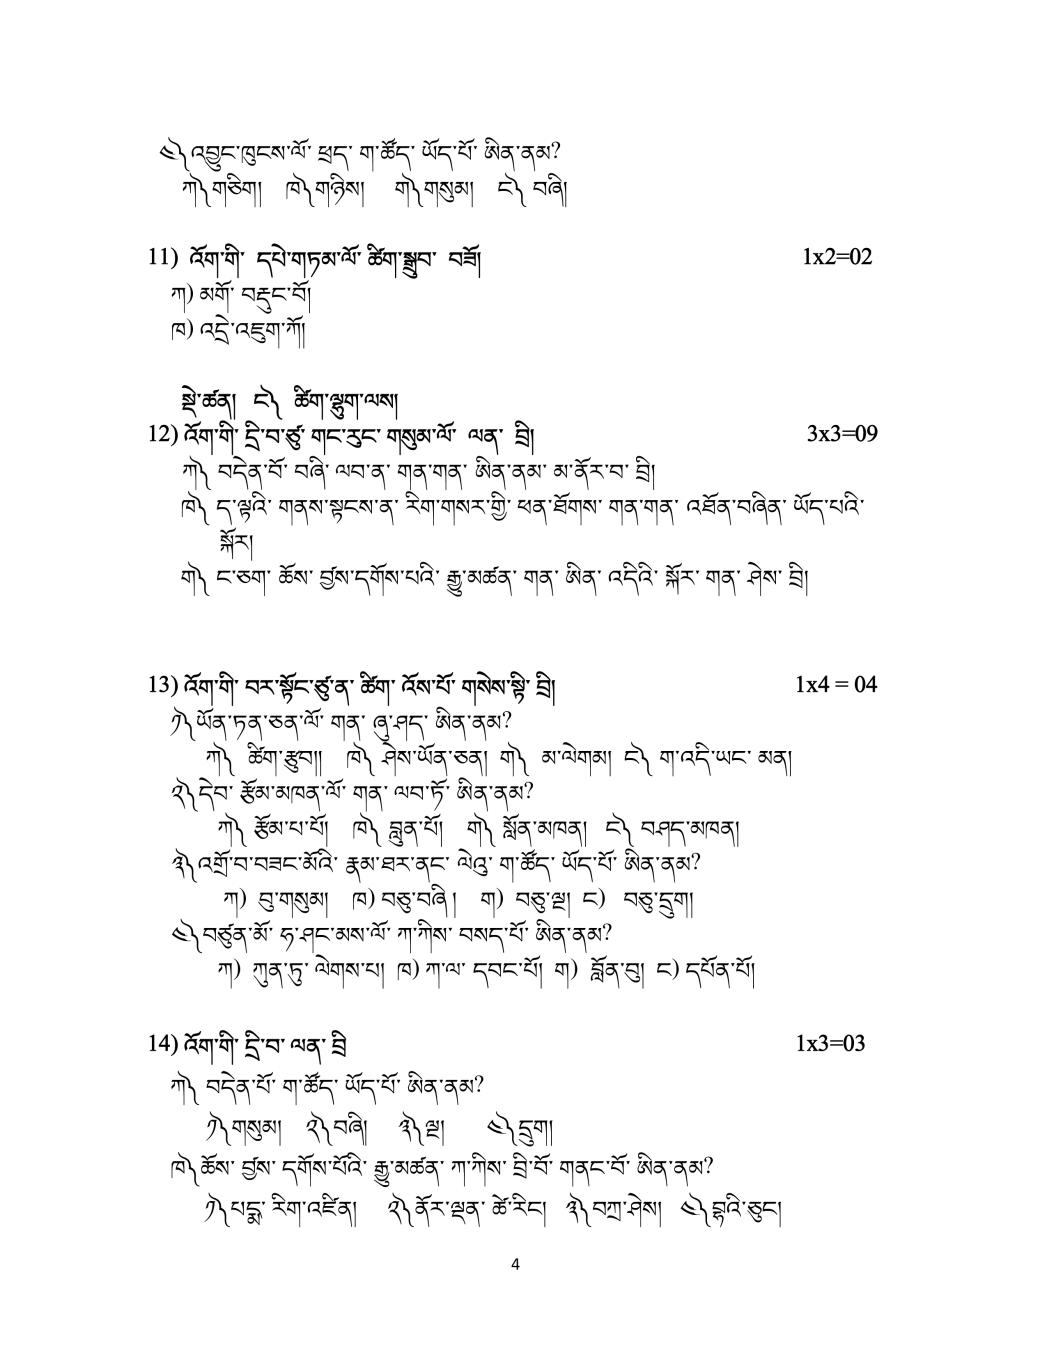 CBSE Sample Papers 2020 for Class 12 – Bhutia